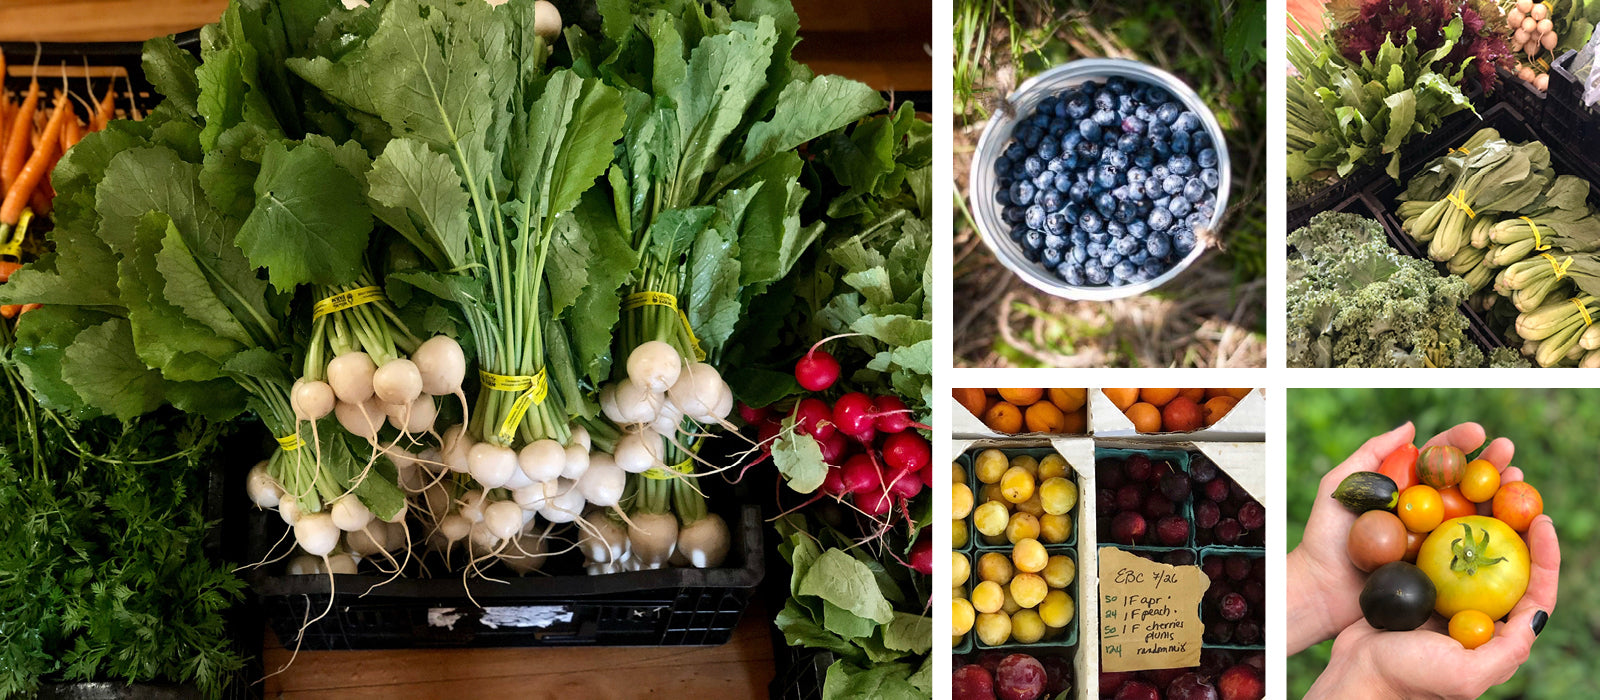 local farms | Early Bird Cookery | Farm-to-Table MEAL DELIVERY, CATERING